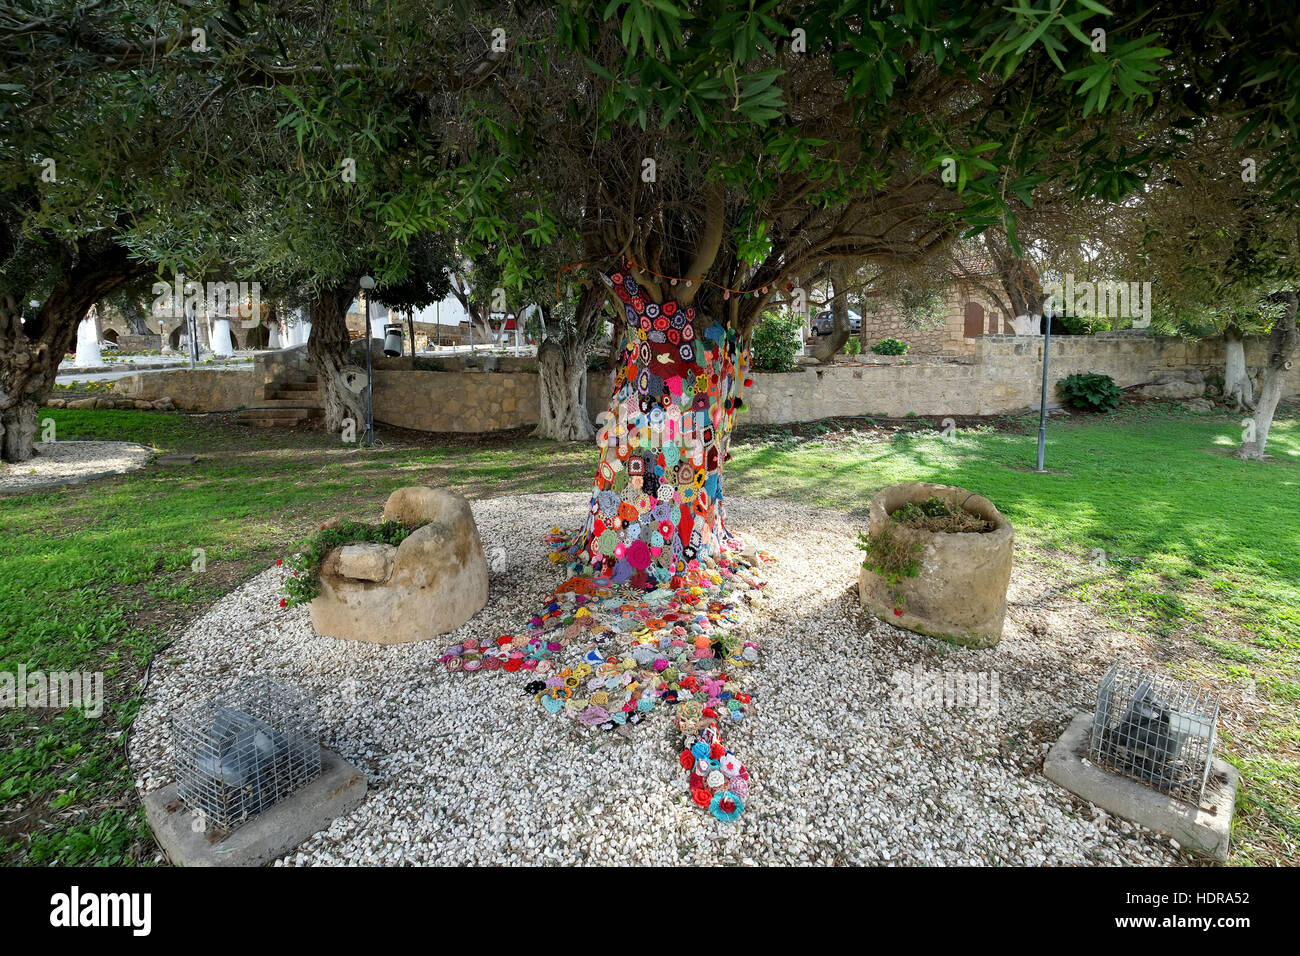 A tree decorated by knitted woollen flowers in a park gladstonos  in Paphos old town centre. - Stock Image